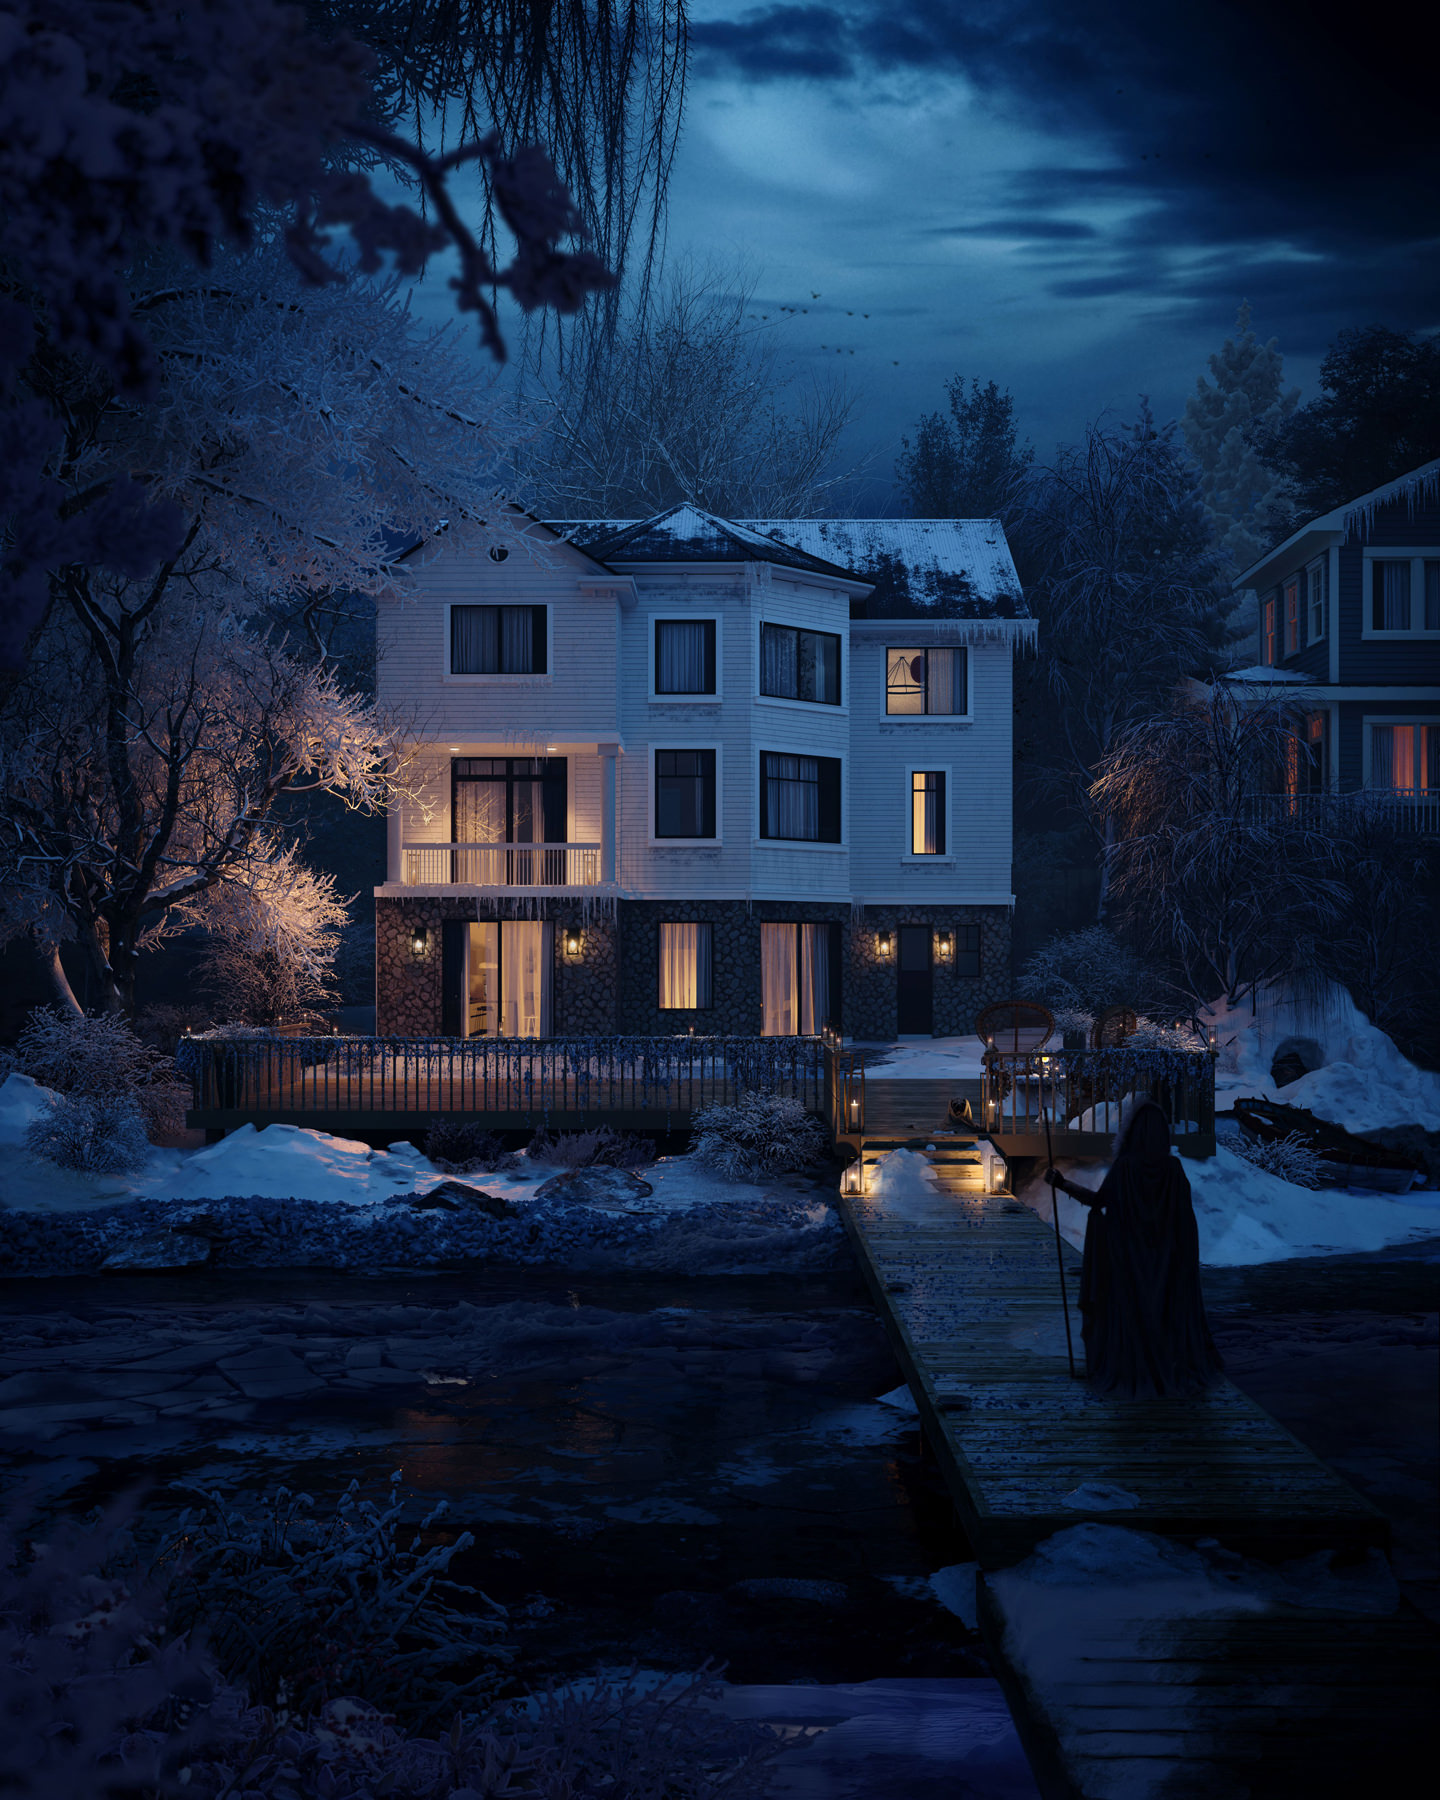 Photorealistic 3D exterior rendering of a house at night with man approaching the building having disembarked from the boat